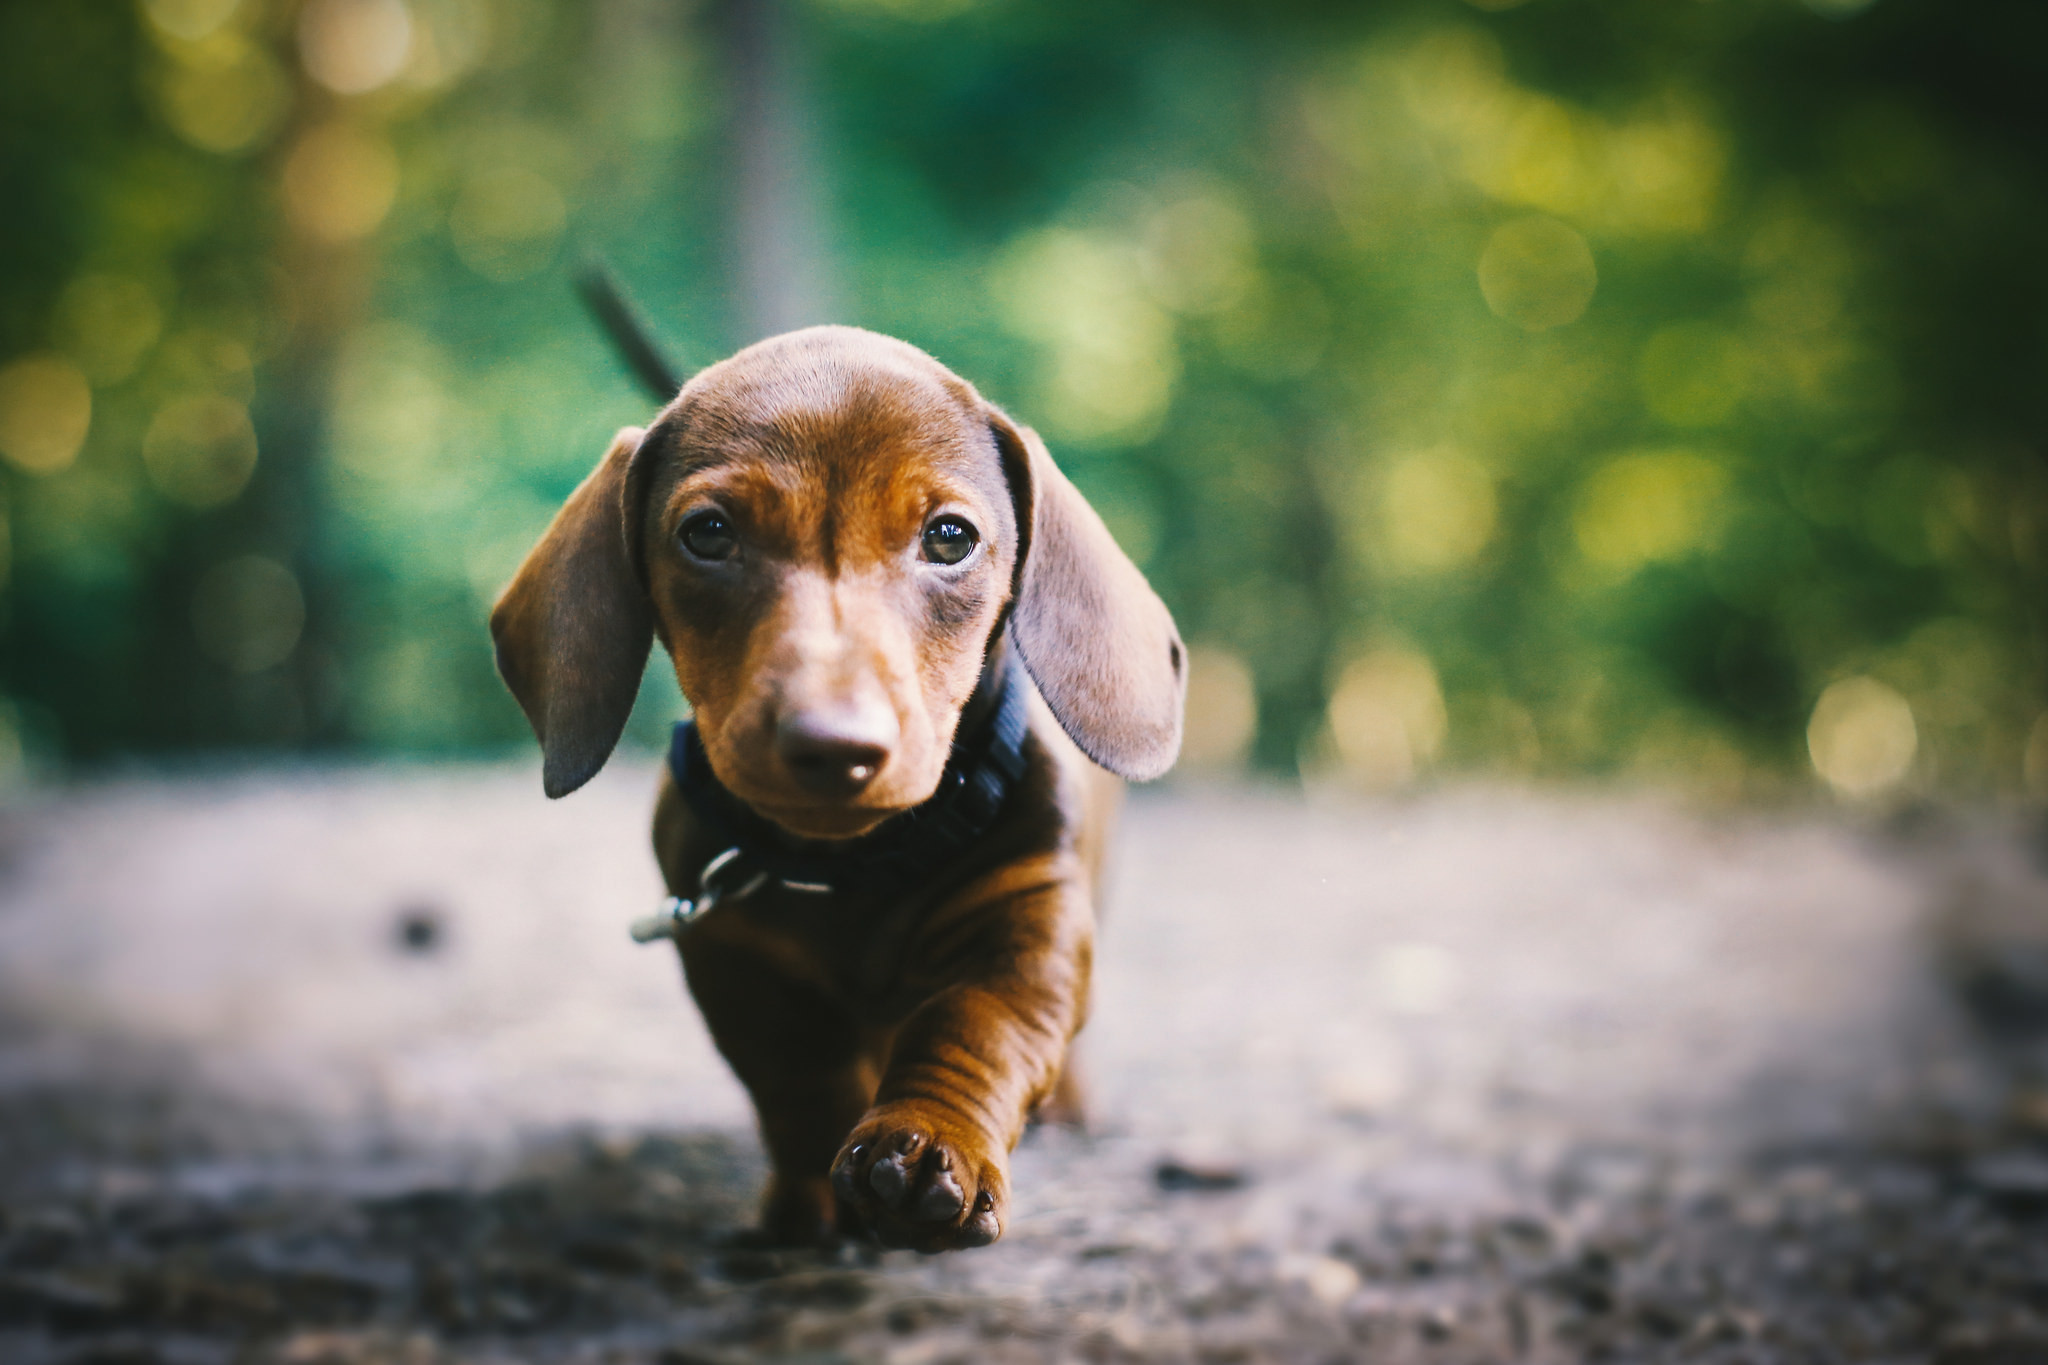 2048x1365 Dachshund Wallpaper